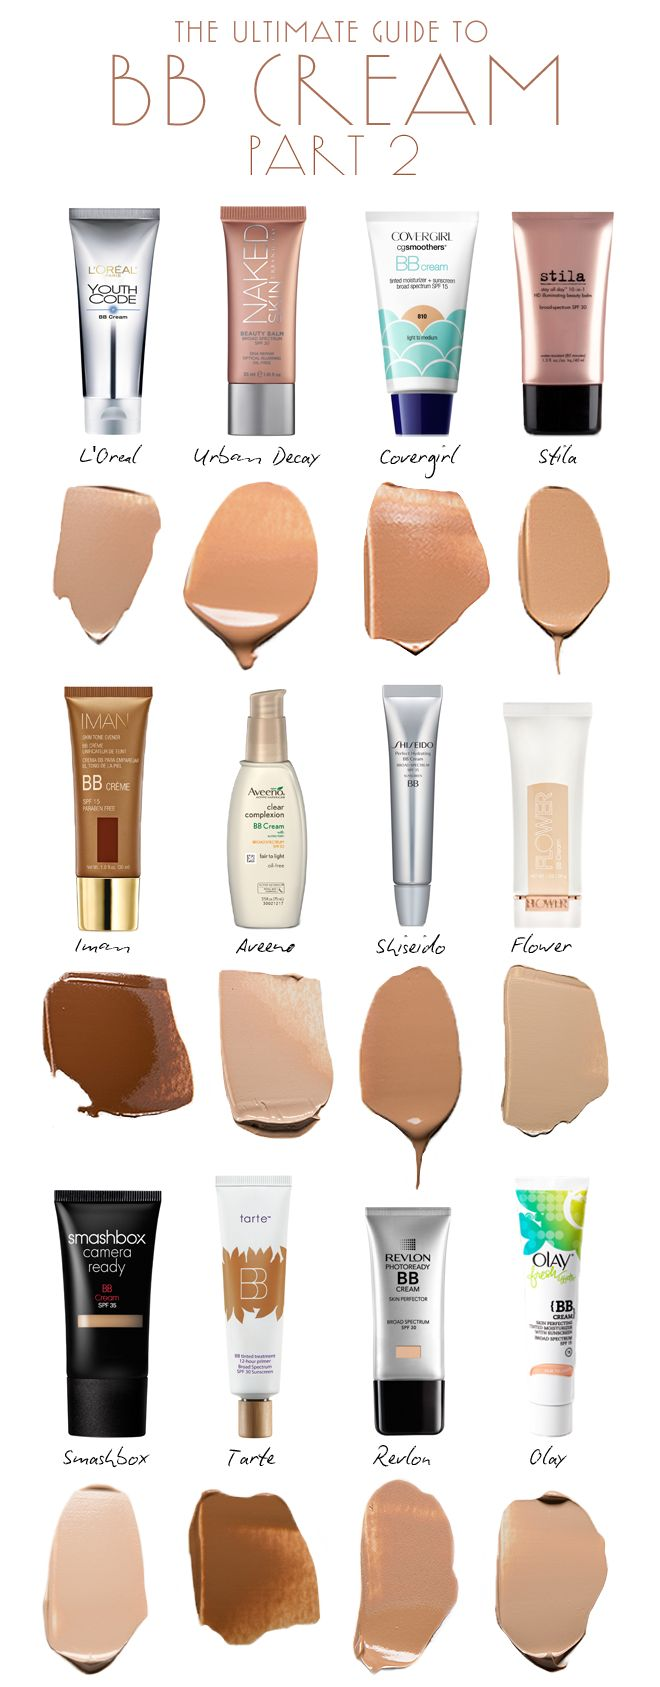 The Ultimate Guide to BB Creams 2